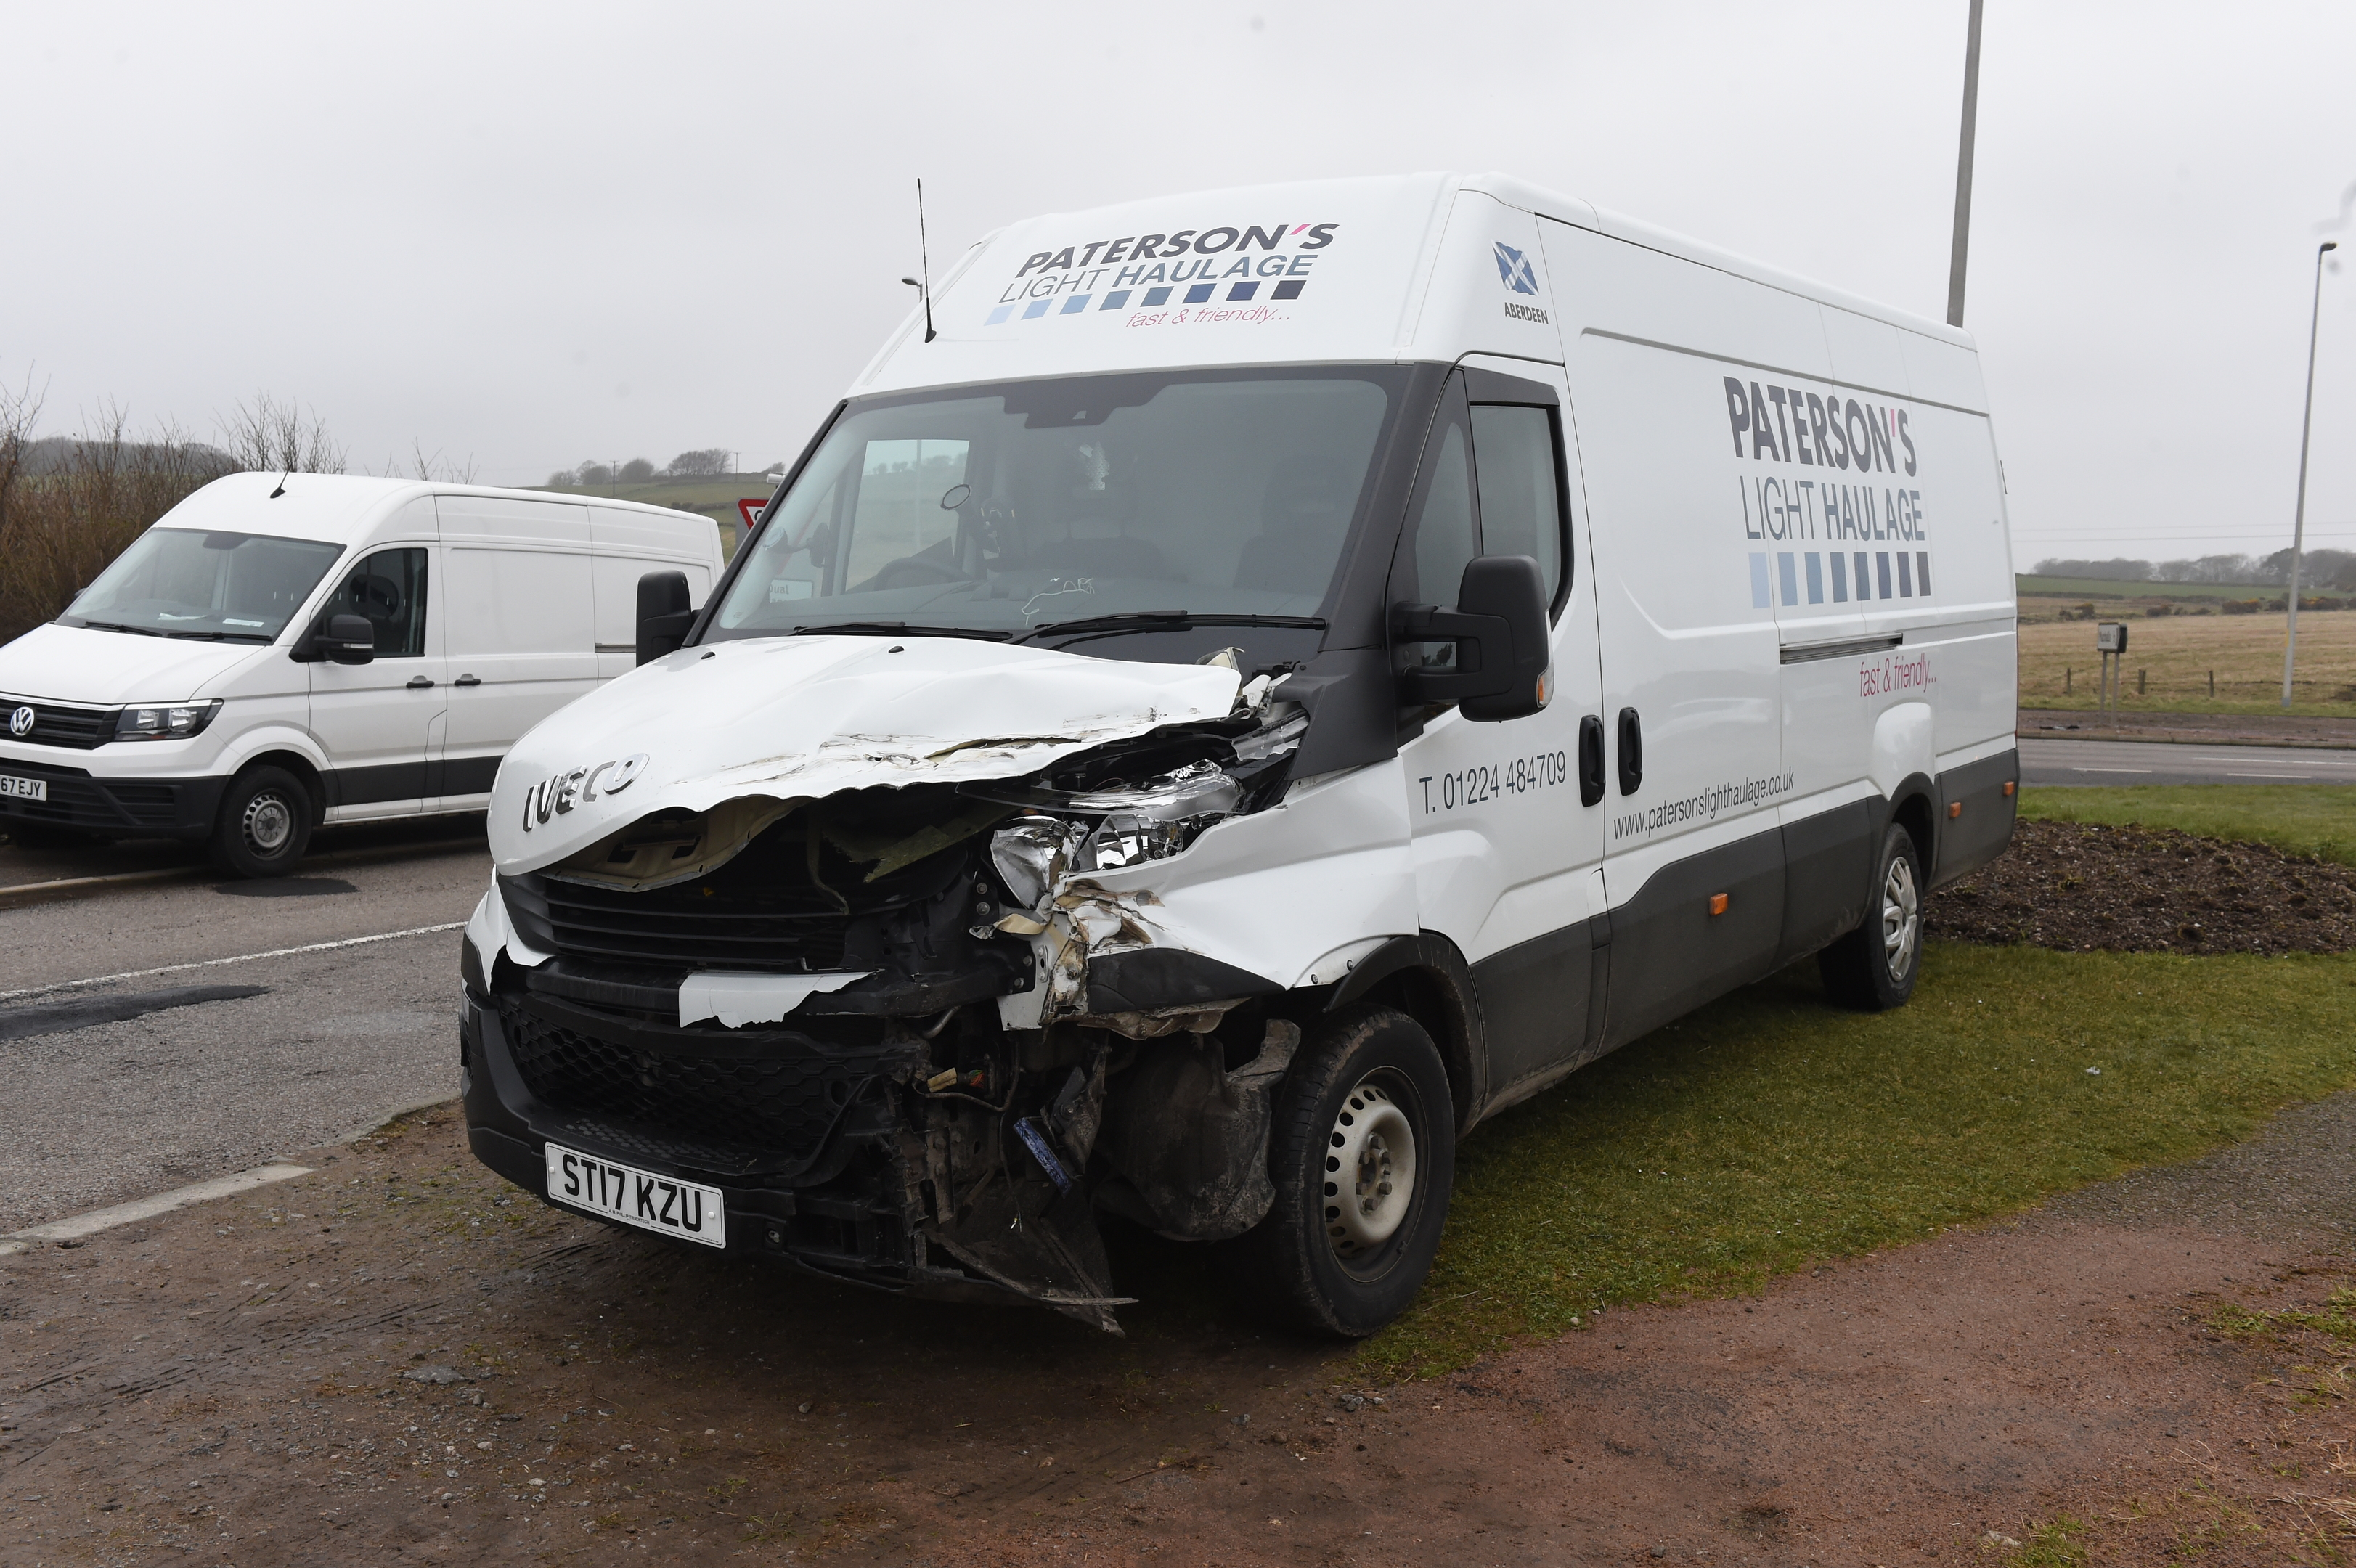 A van was involved in the crash